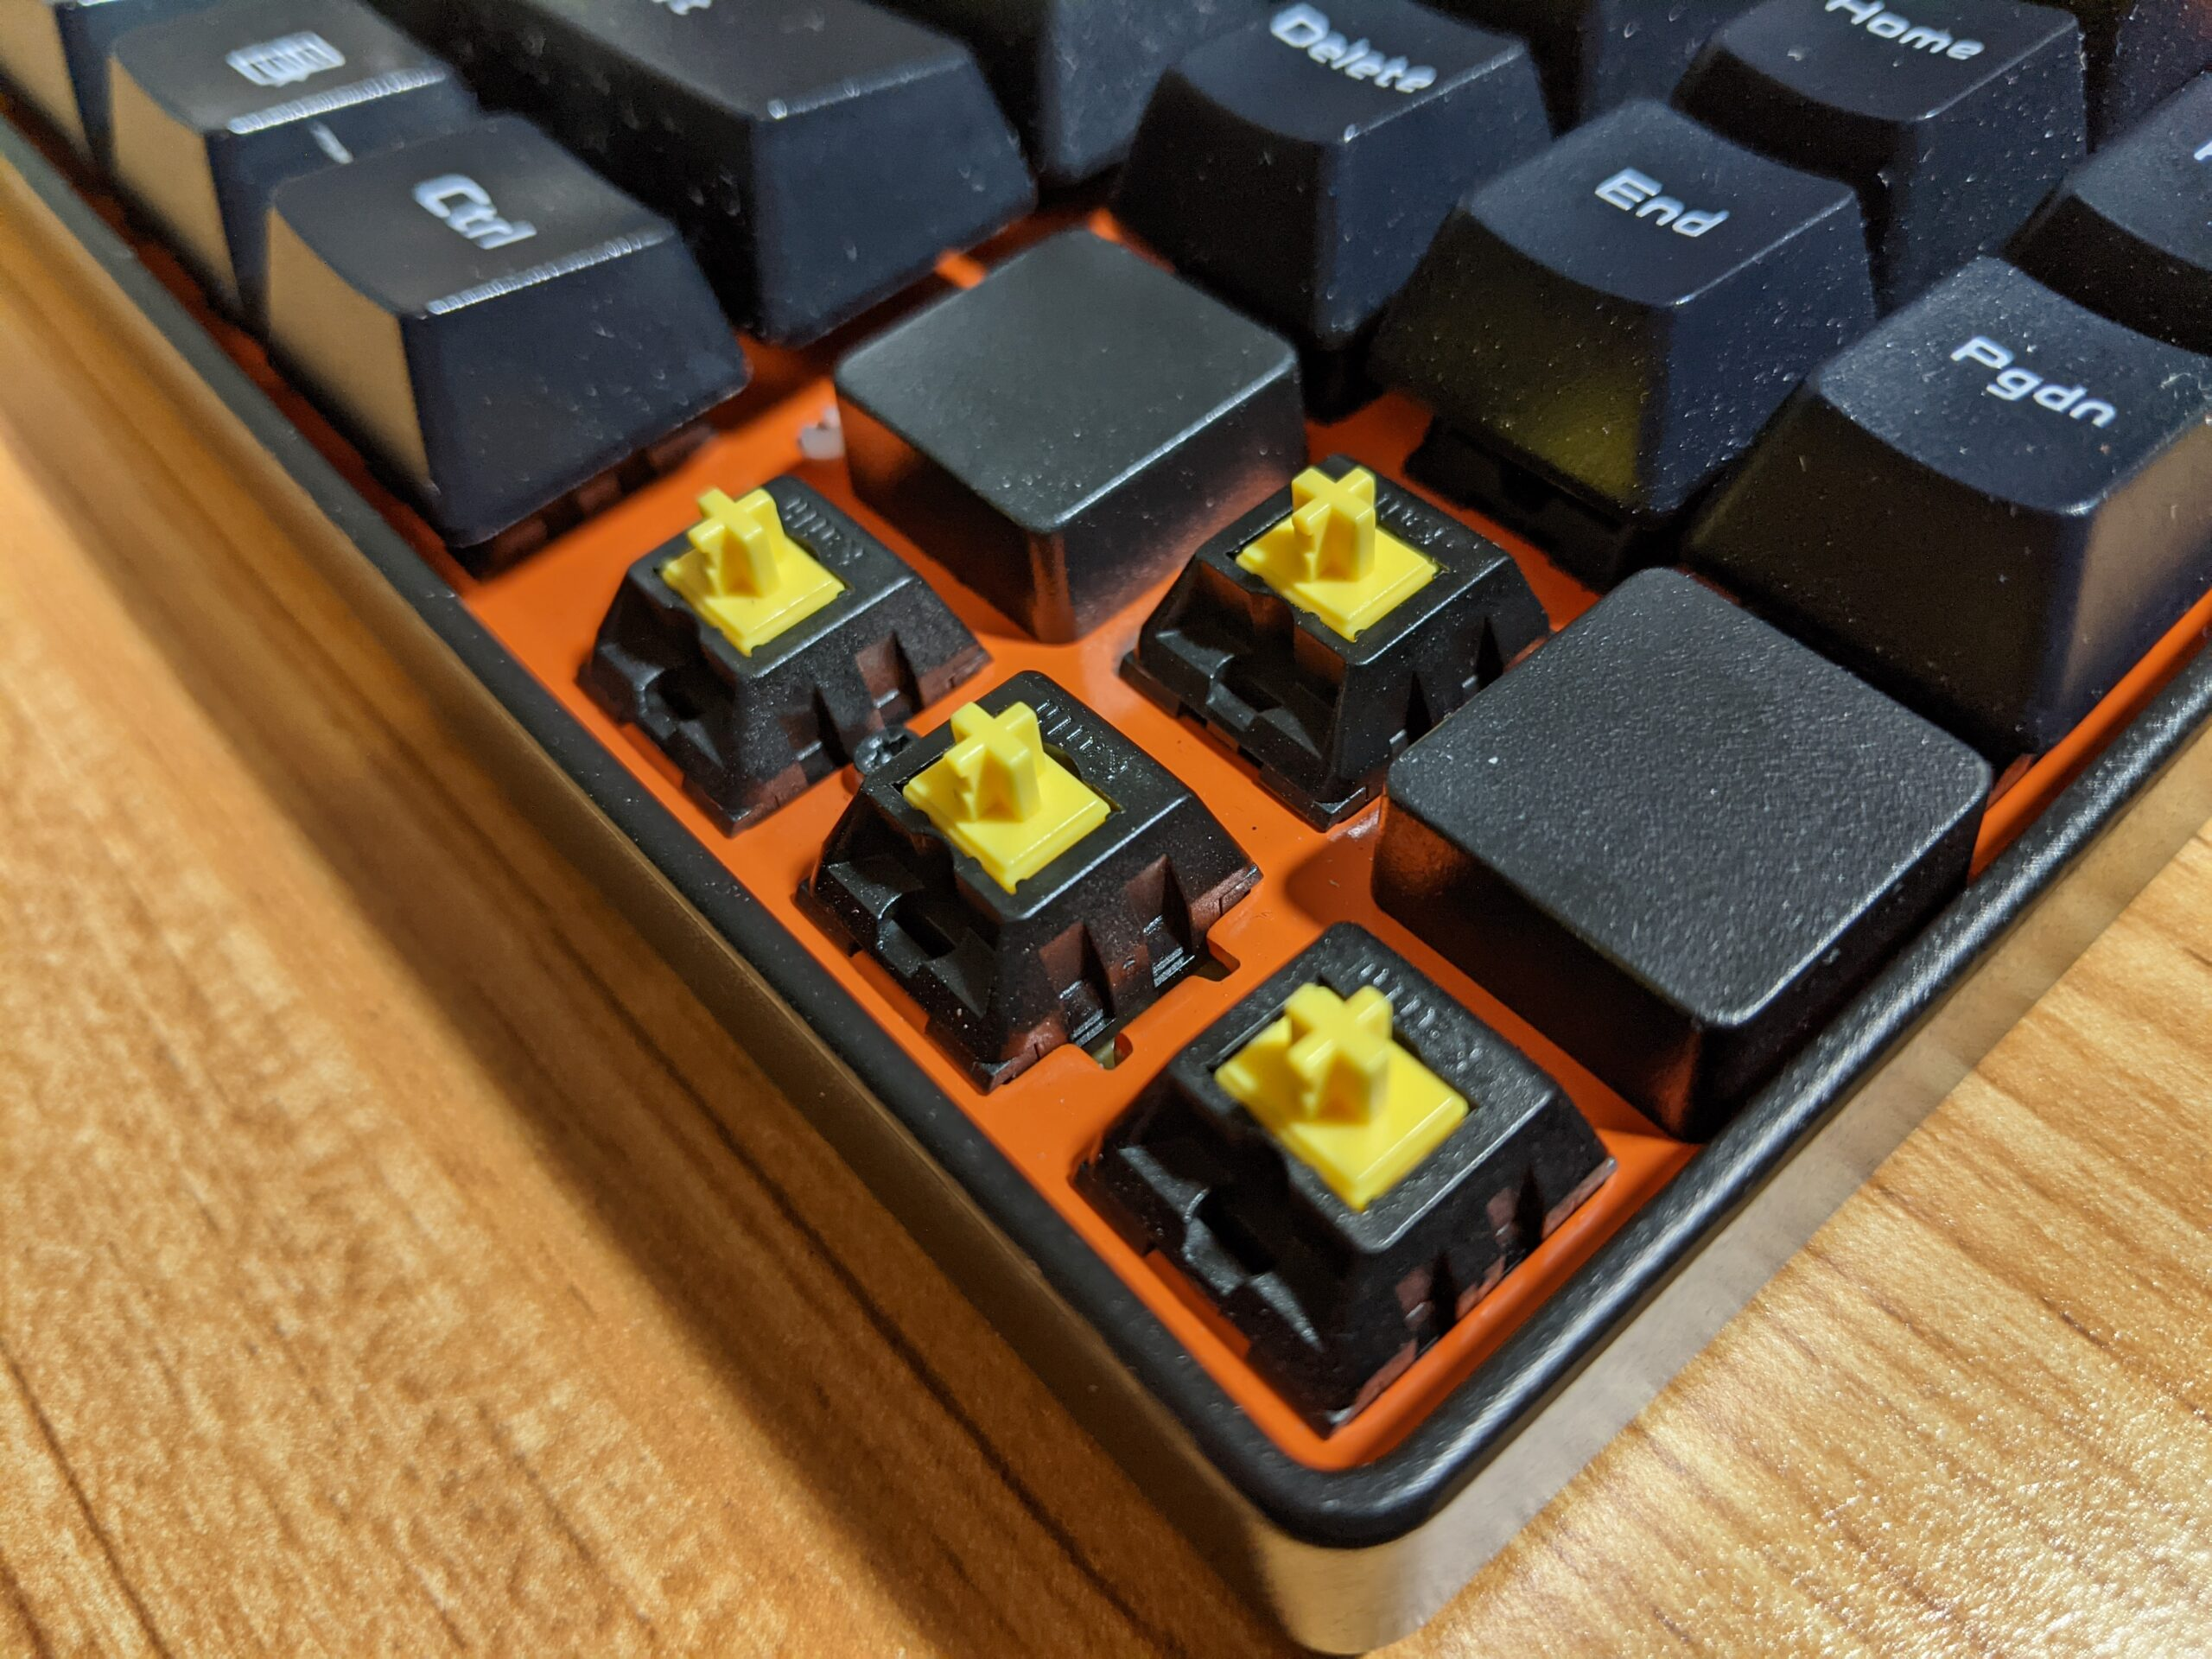 Kailh Yellow switches.